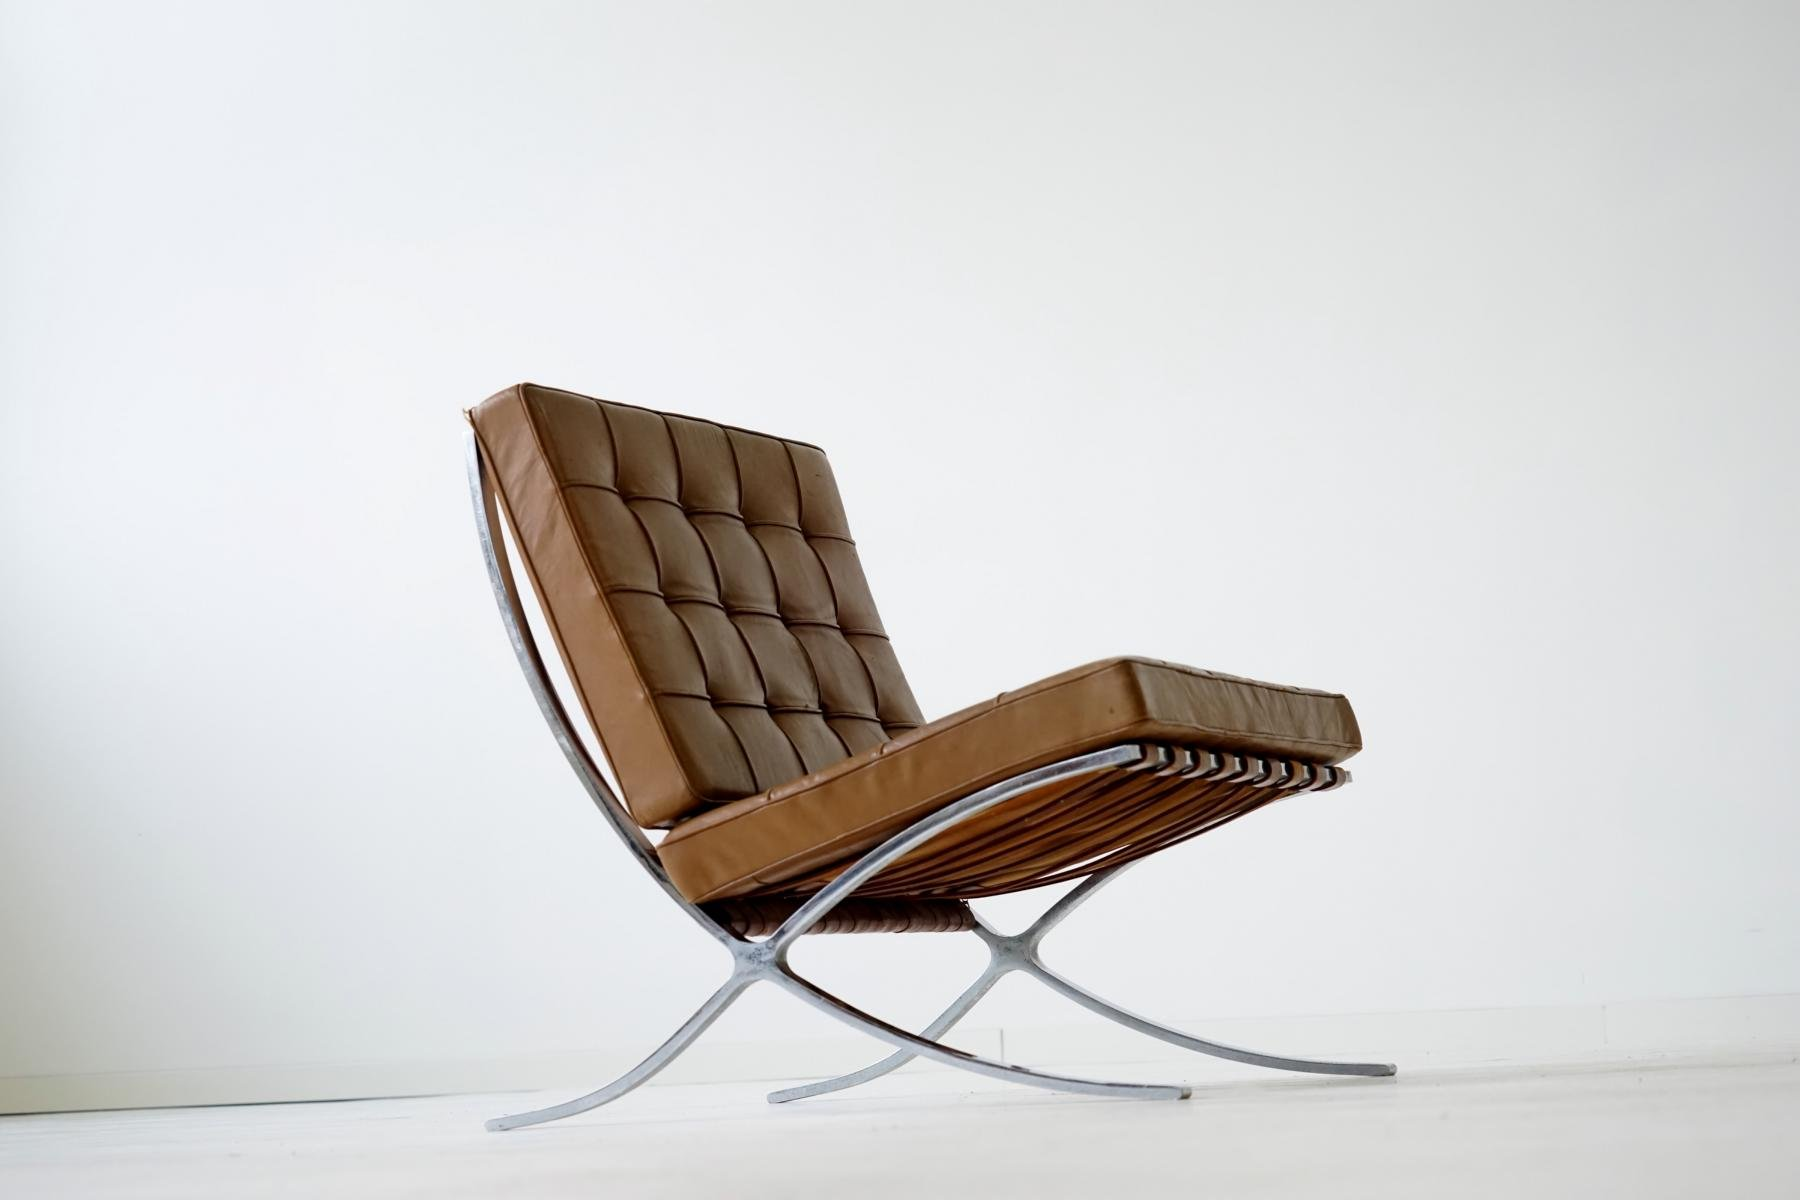 inspired of retail designs pavillion lounge home by use shop mies ludwig rohe van corner barcelona der ottoman inspiration leather chair